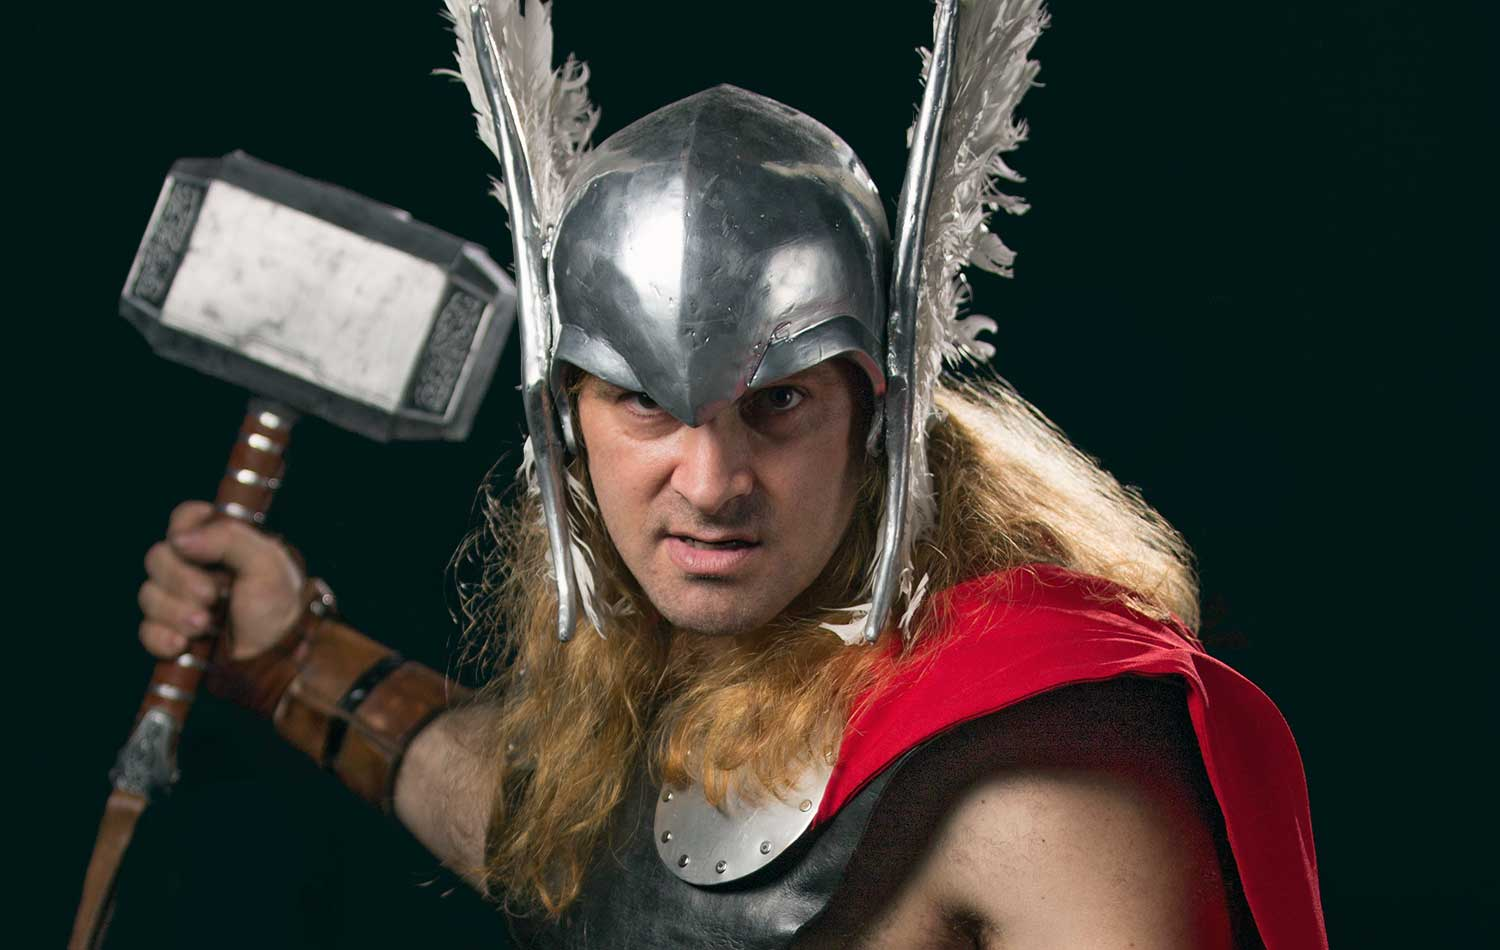 Man in Cosplay Thor Costume